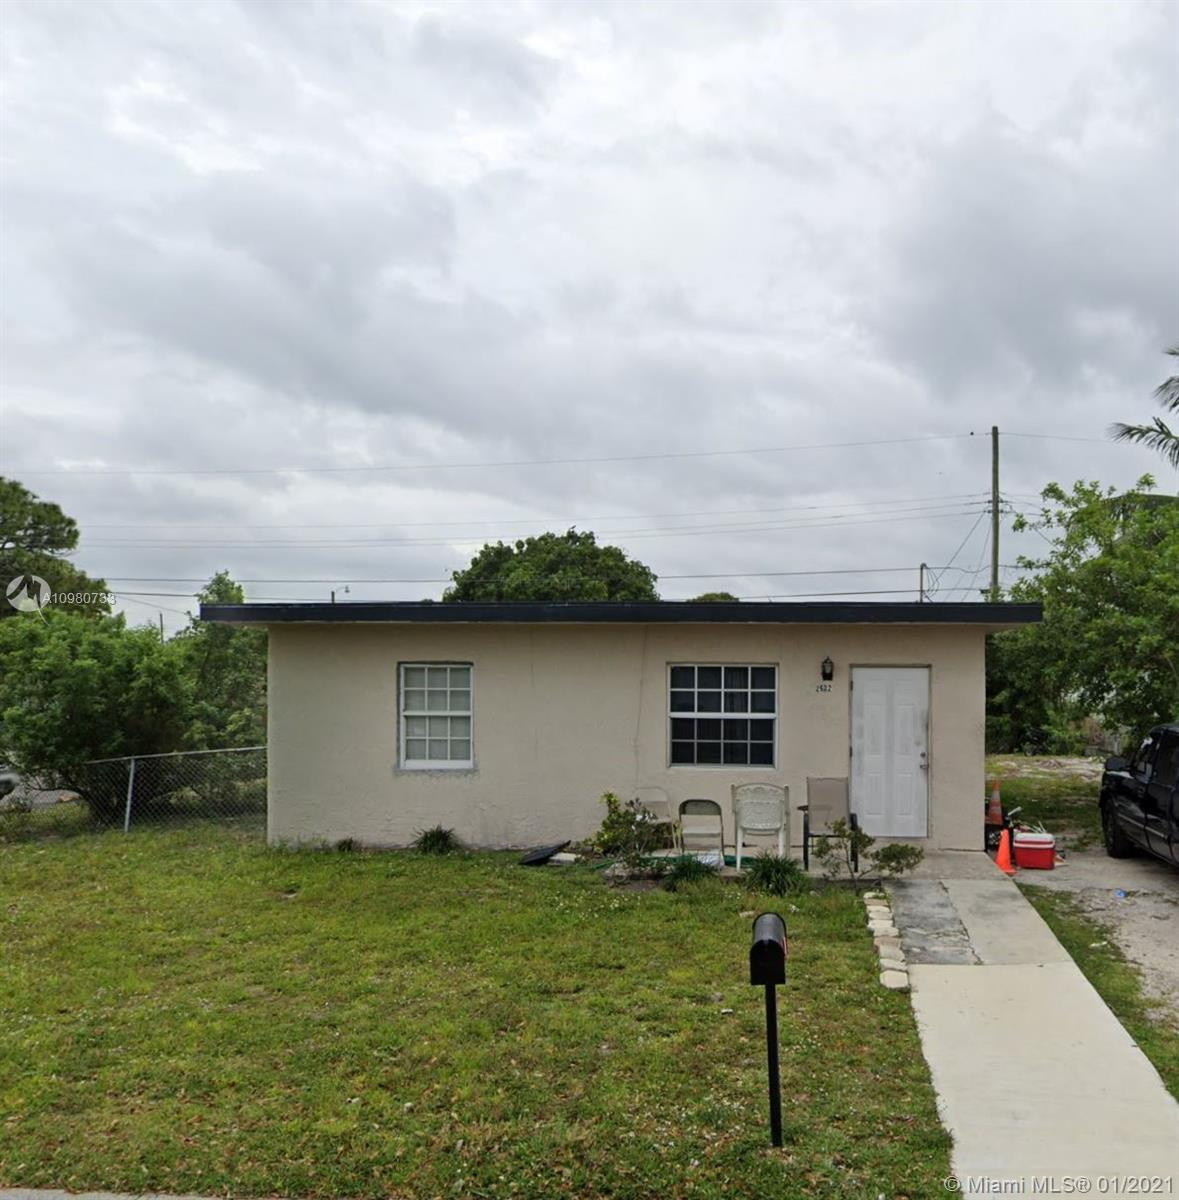 2602 NW 9th Ct, Pompano Beach, Florida 33069